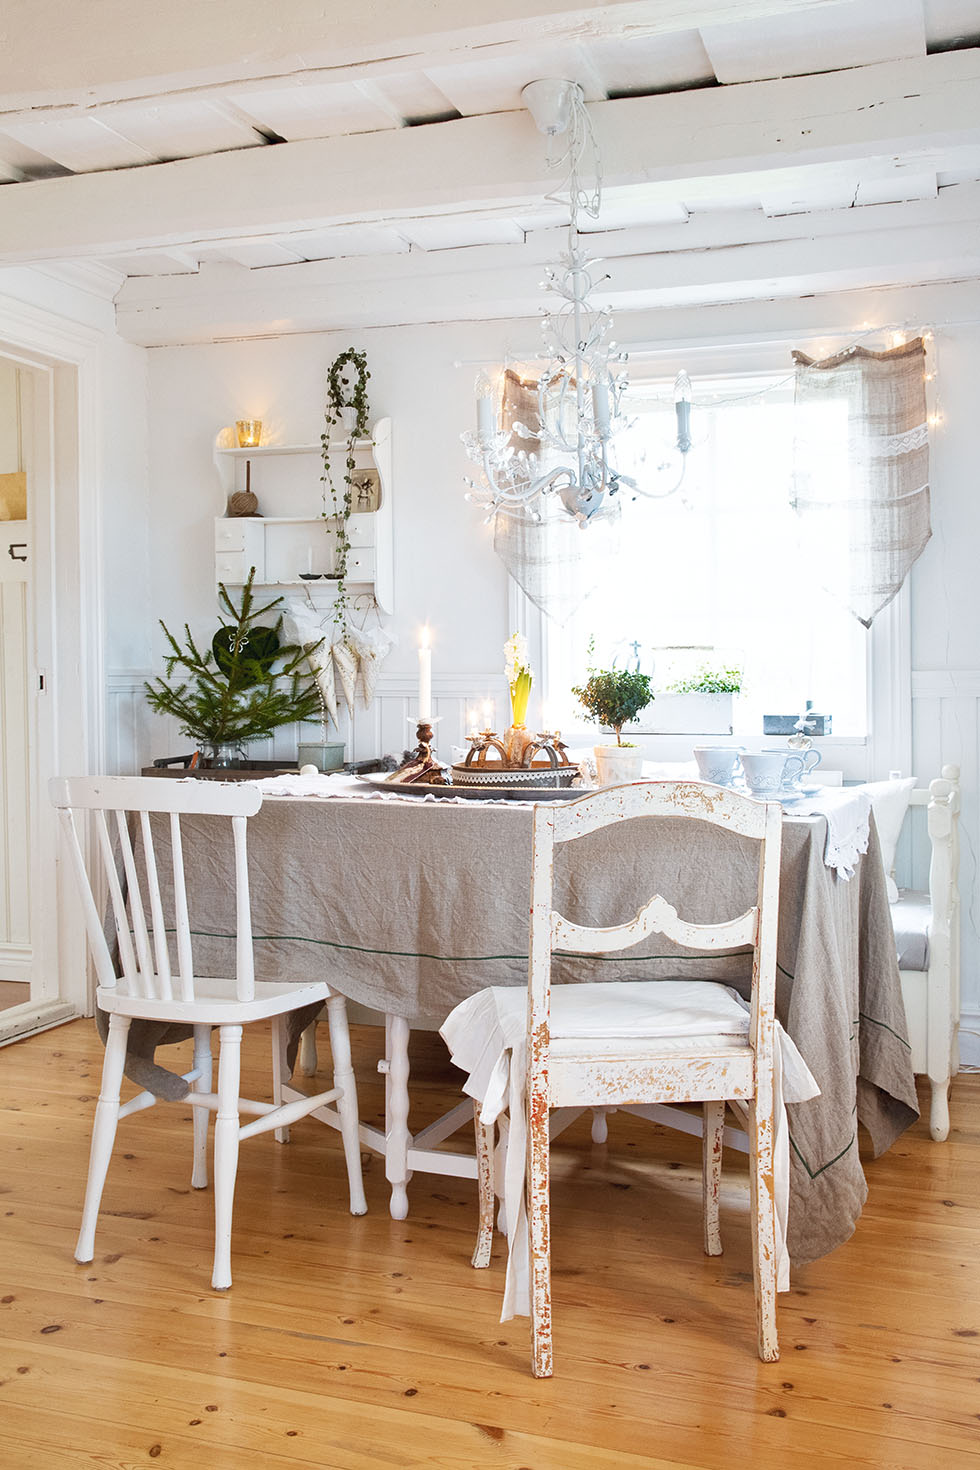 jowilin-swedish-house-dining-table